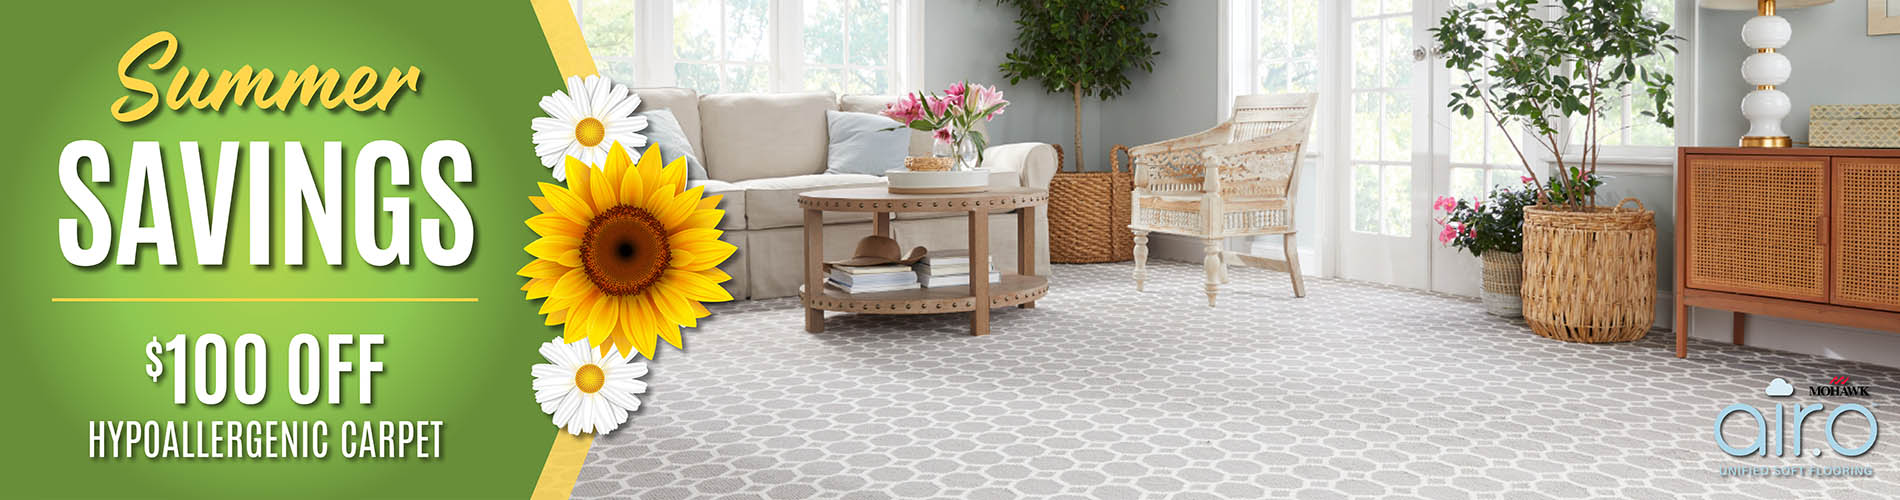 $100 off hypoallergenic carpet during our Summer Savings